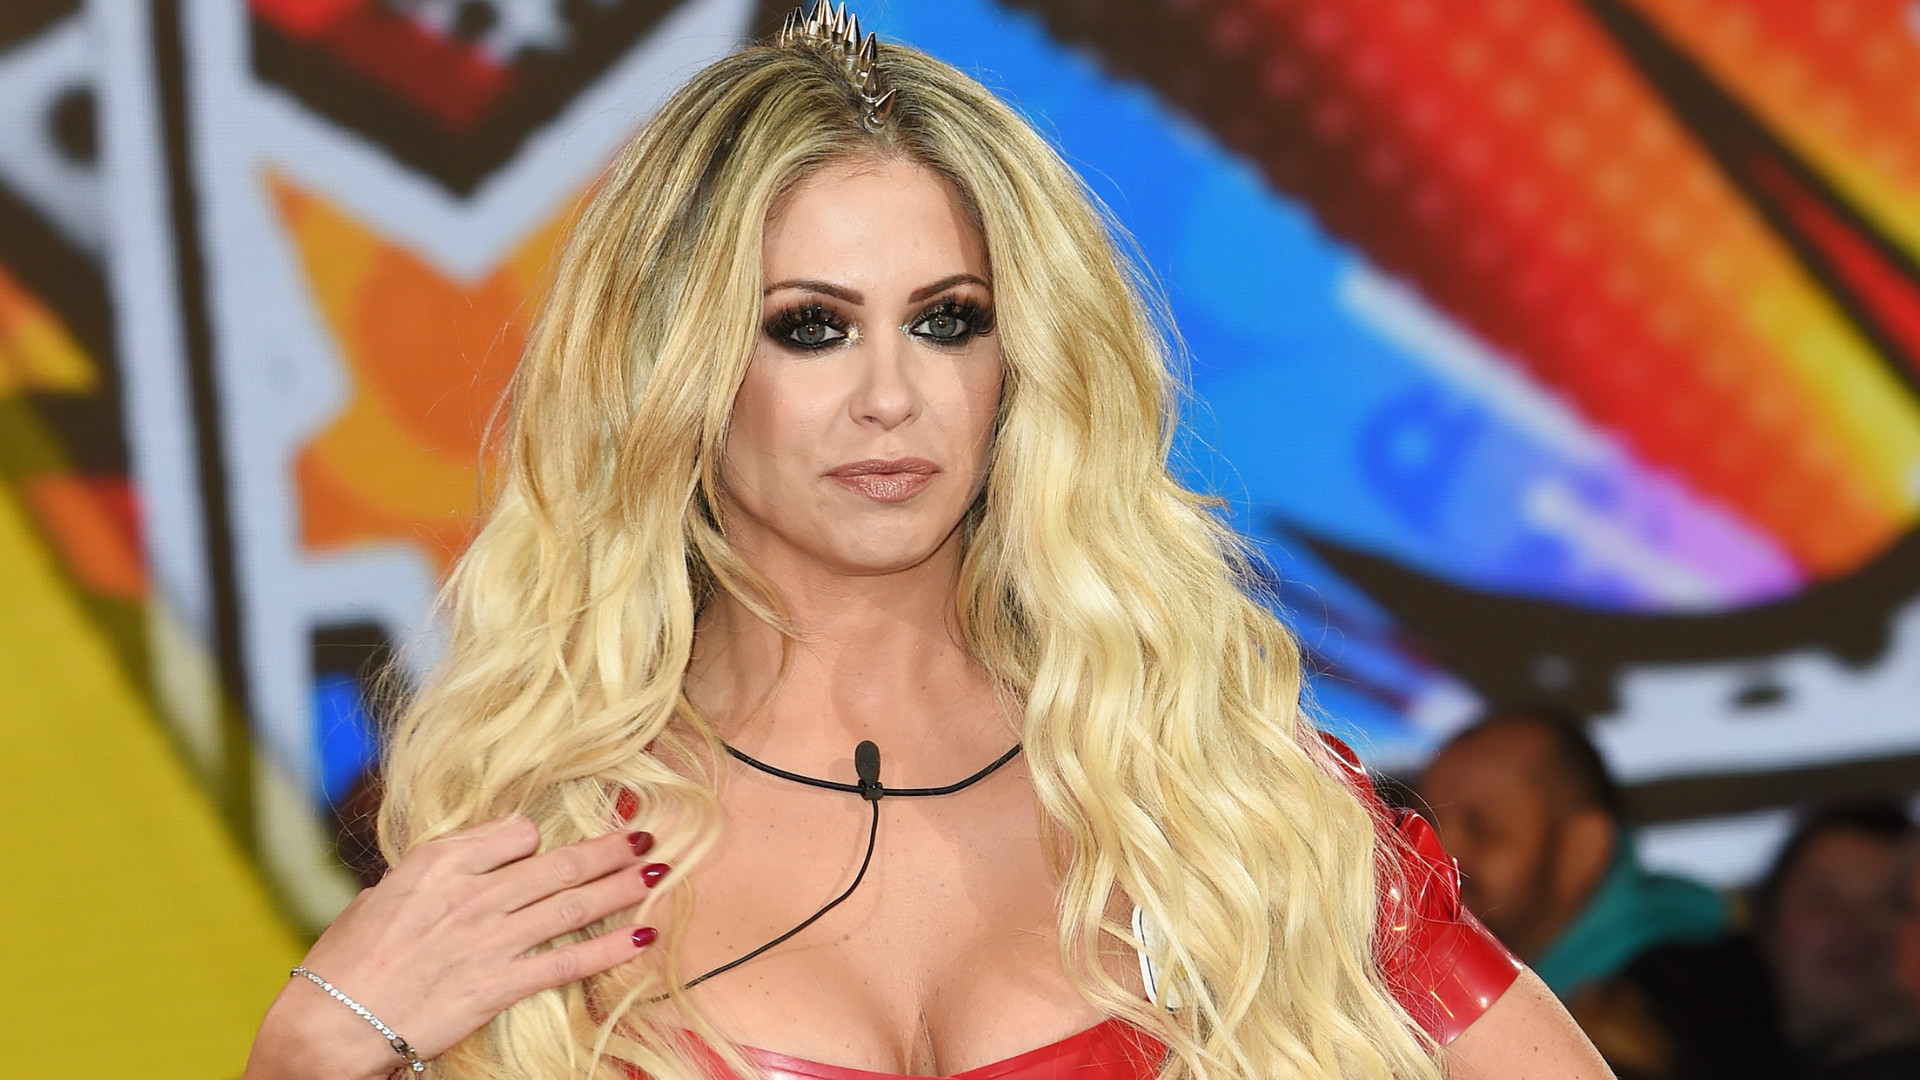 Bianca Gascoigne entering the Big Brother house.